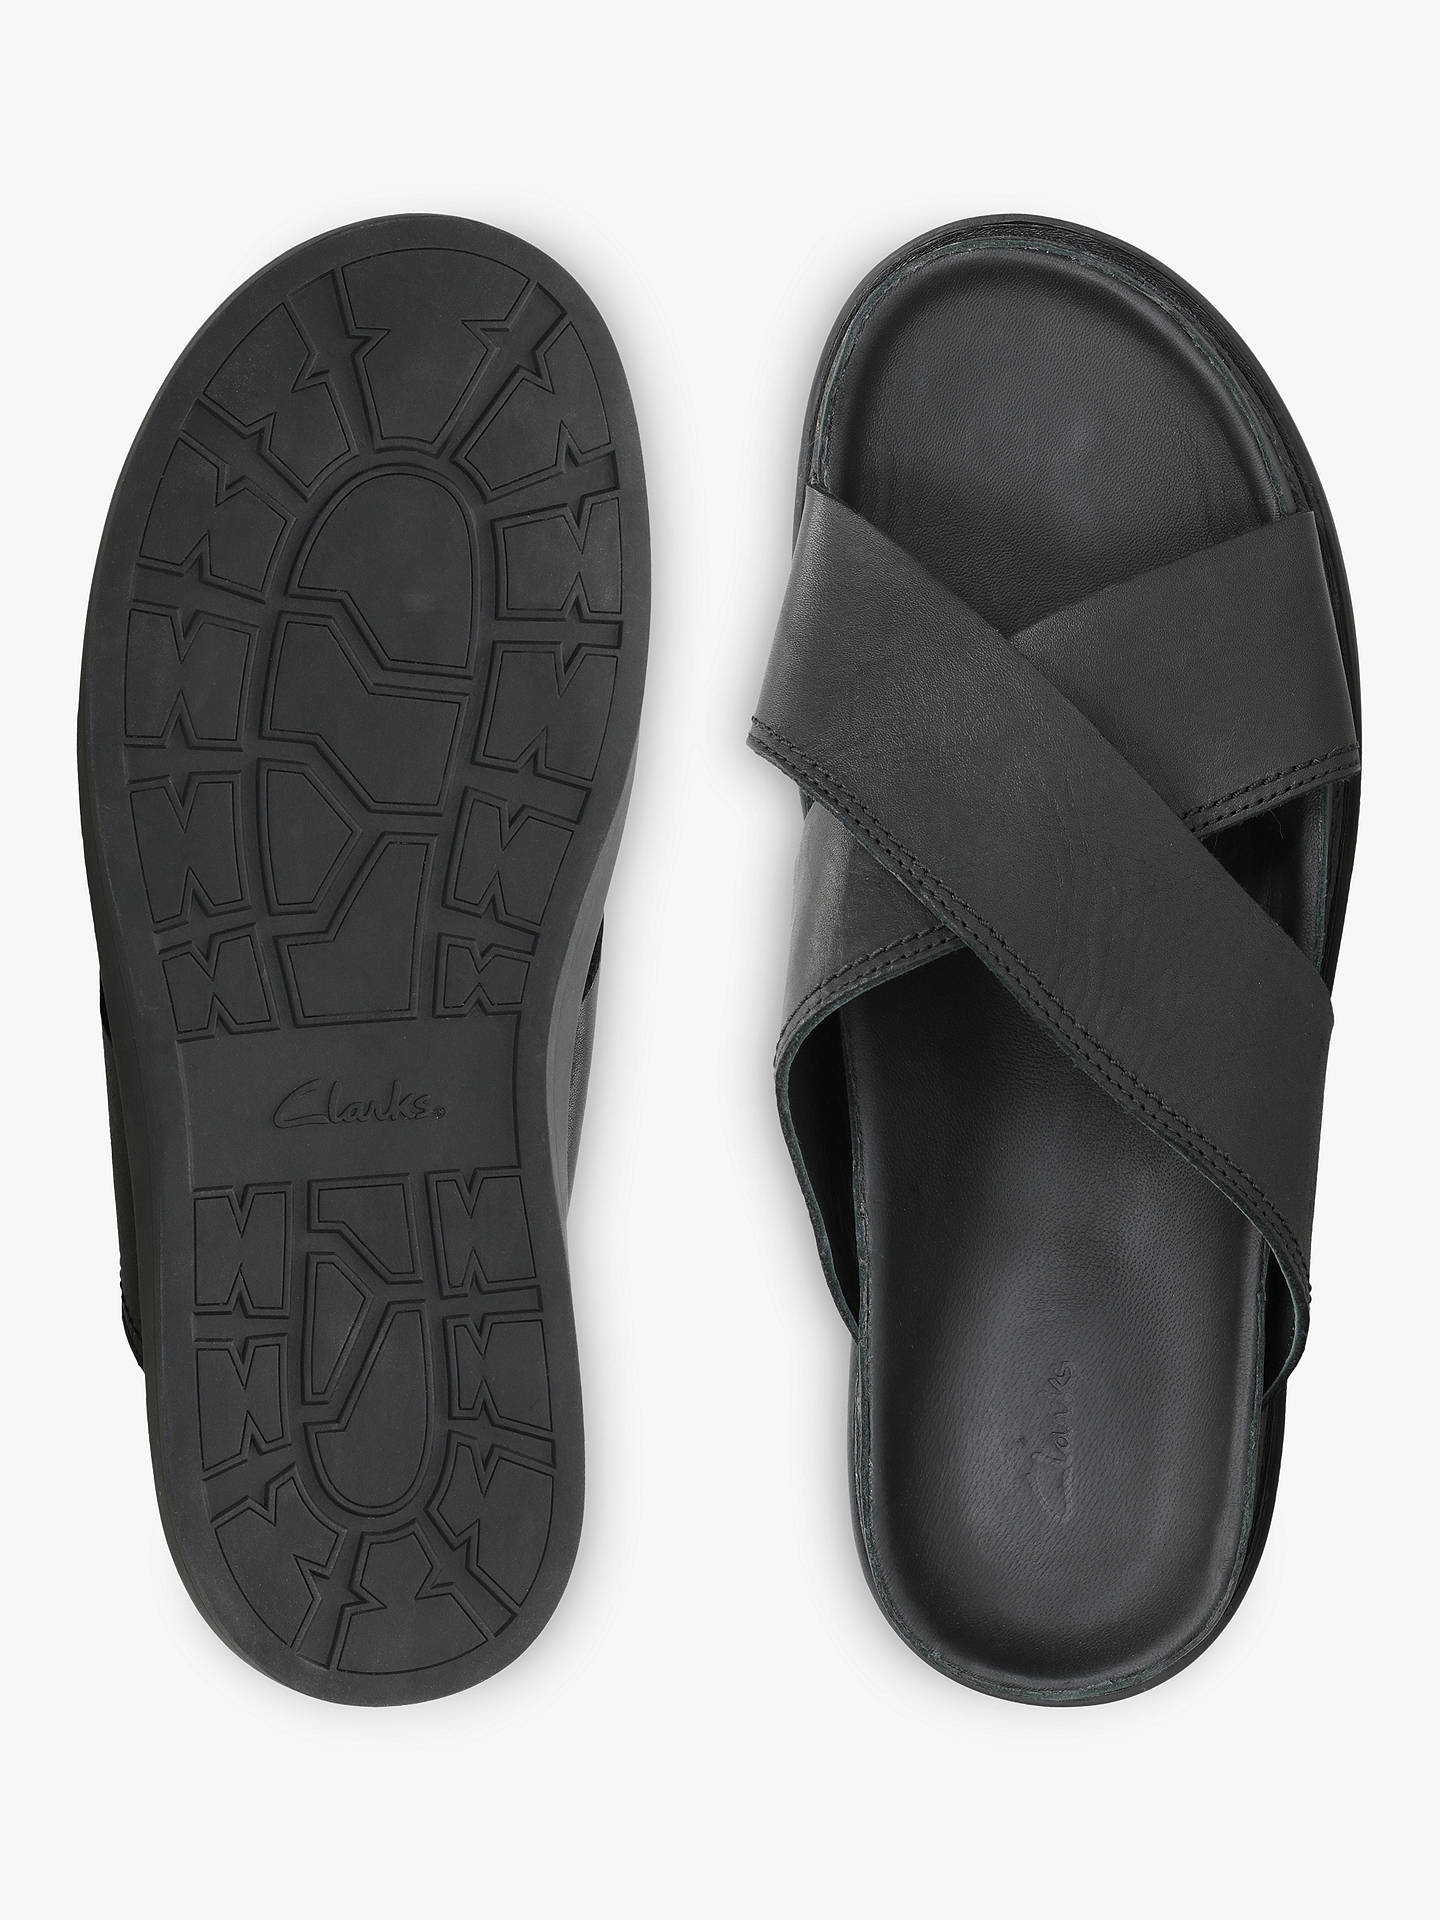 56c37c23acd4 ... Buy Clarks Trace Cross Leather Sandals